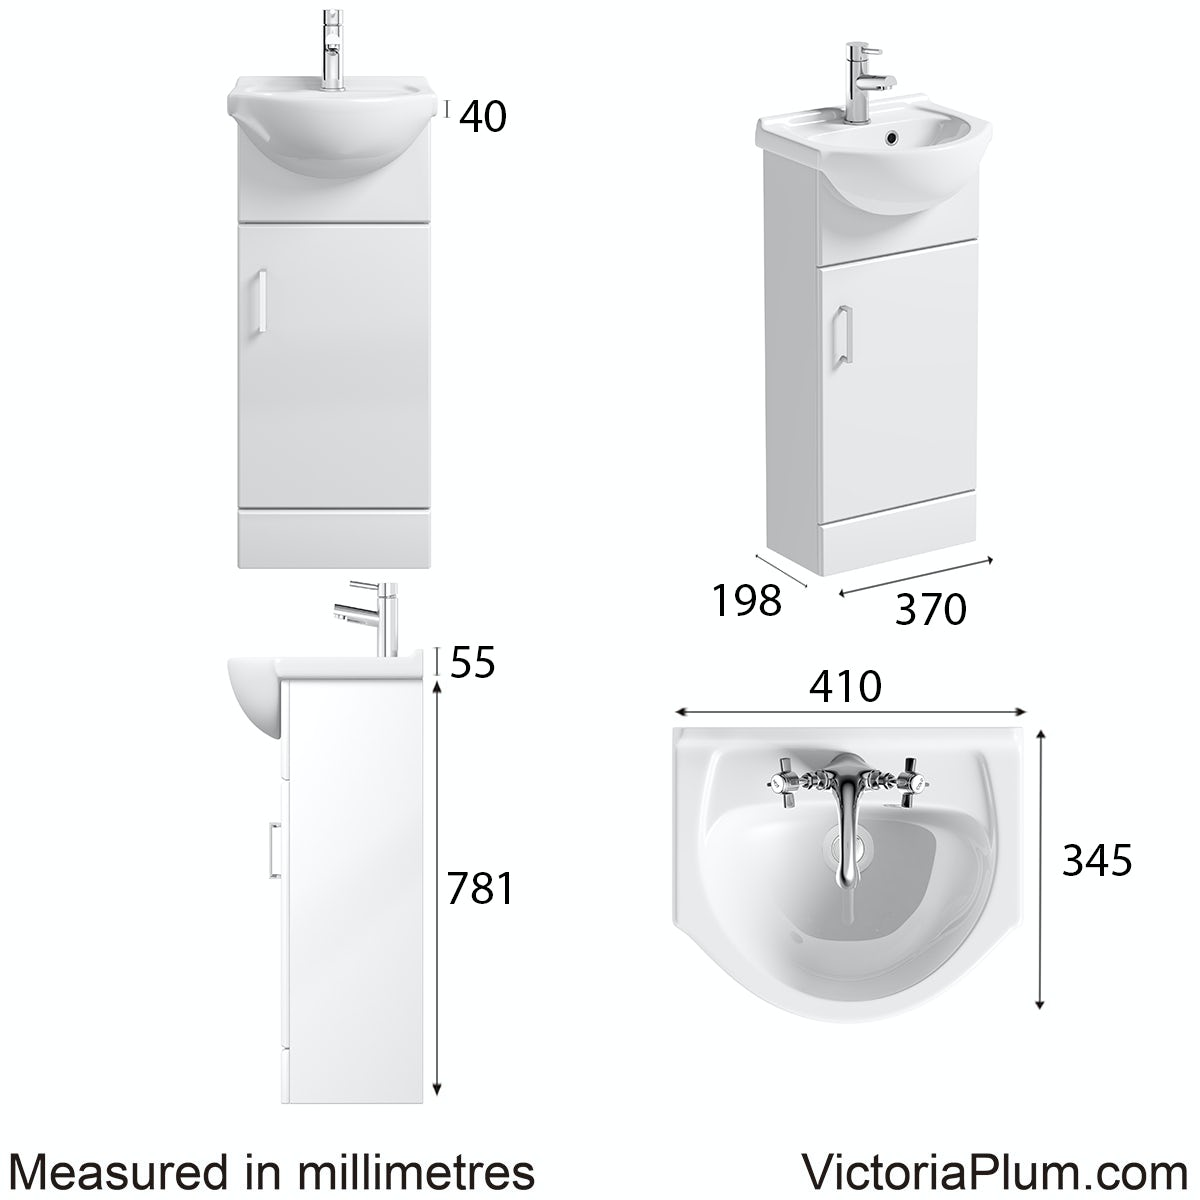 Dimensions for Orchard Eden white vanity unit and basin 410mm